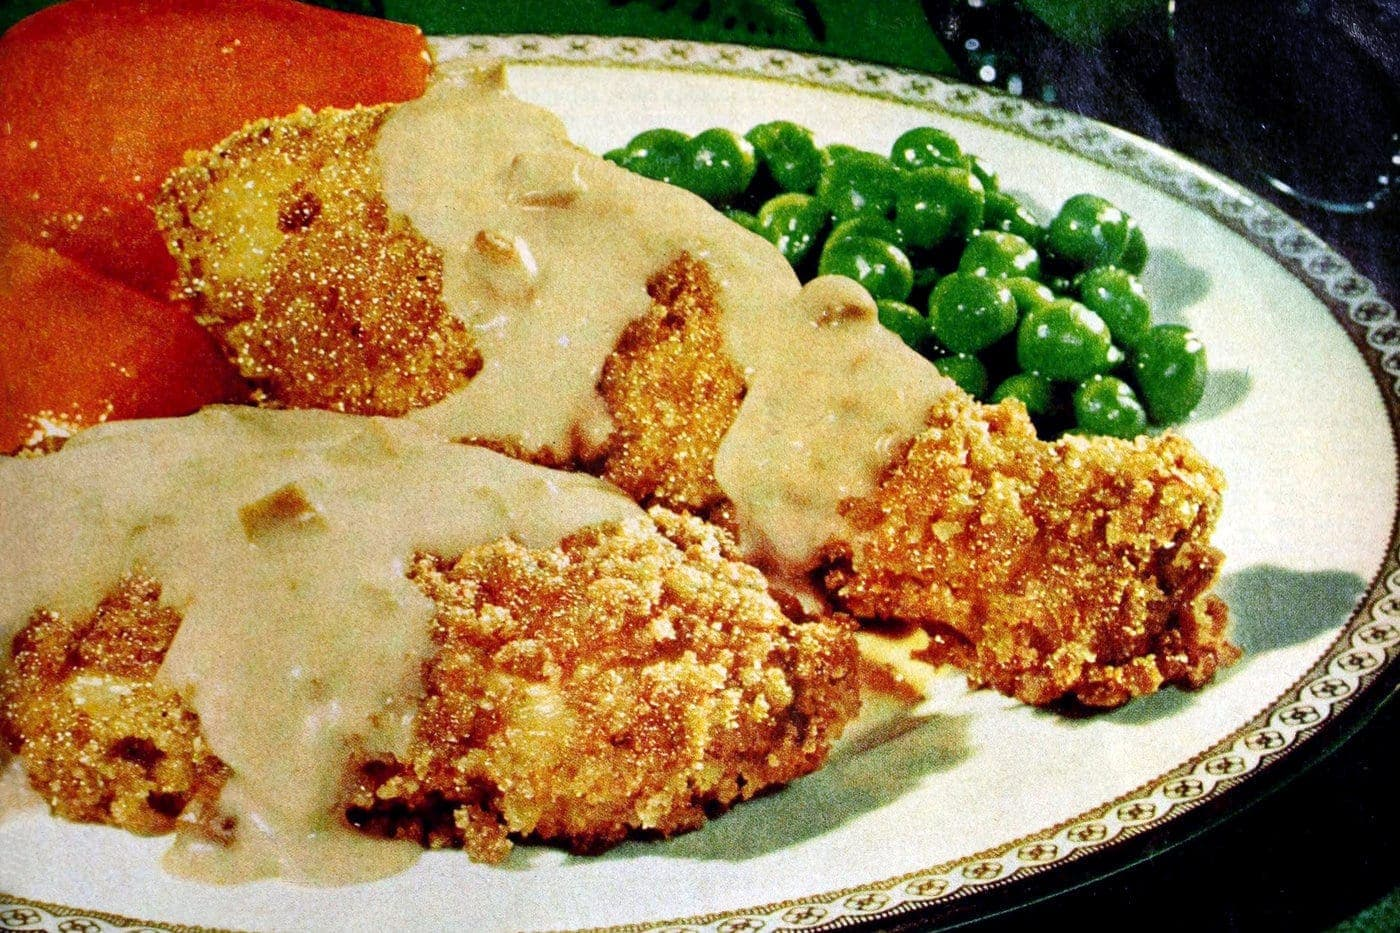 Vintage Campbell's chicken crunch recipe